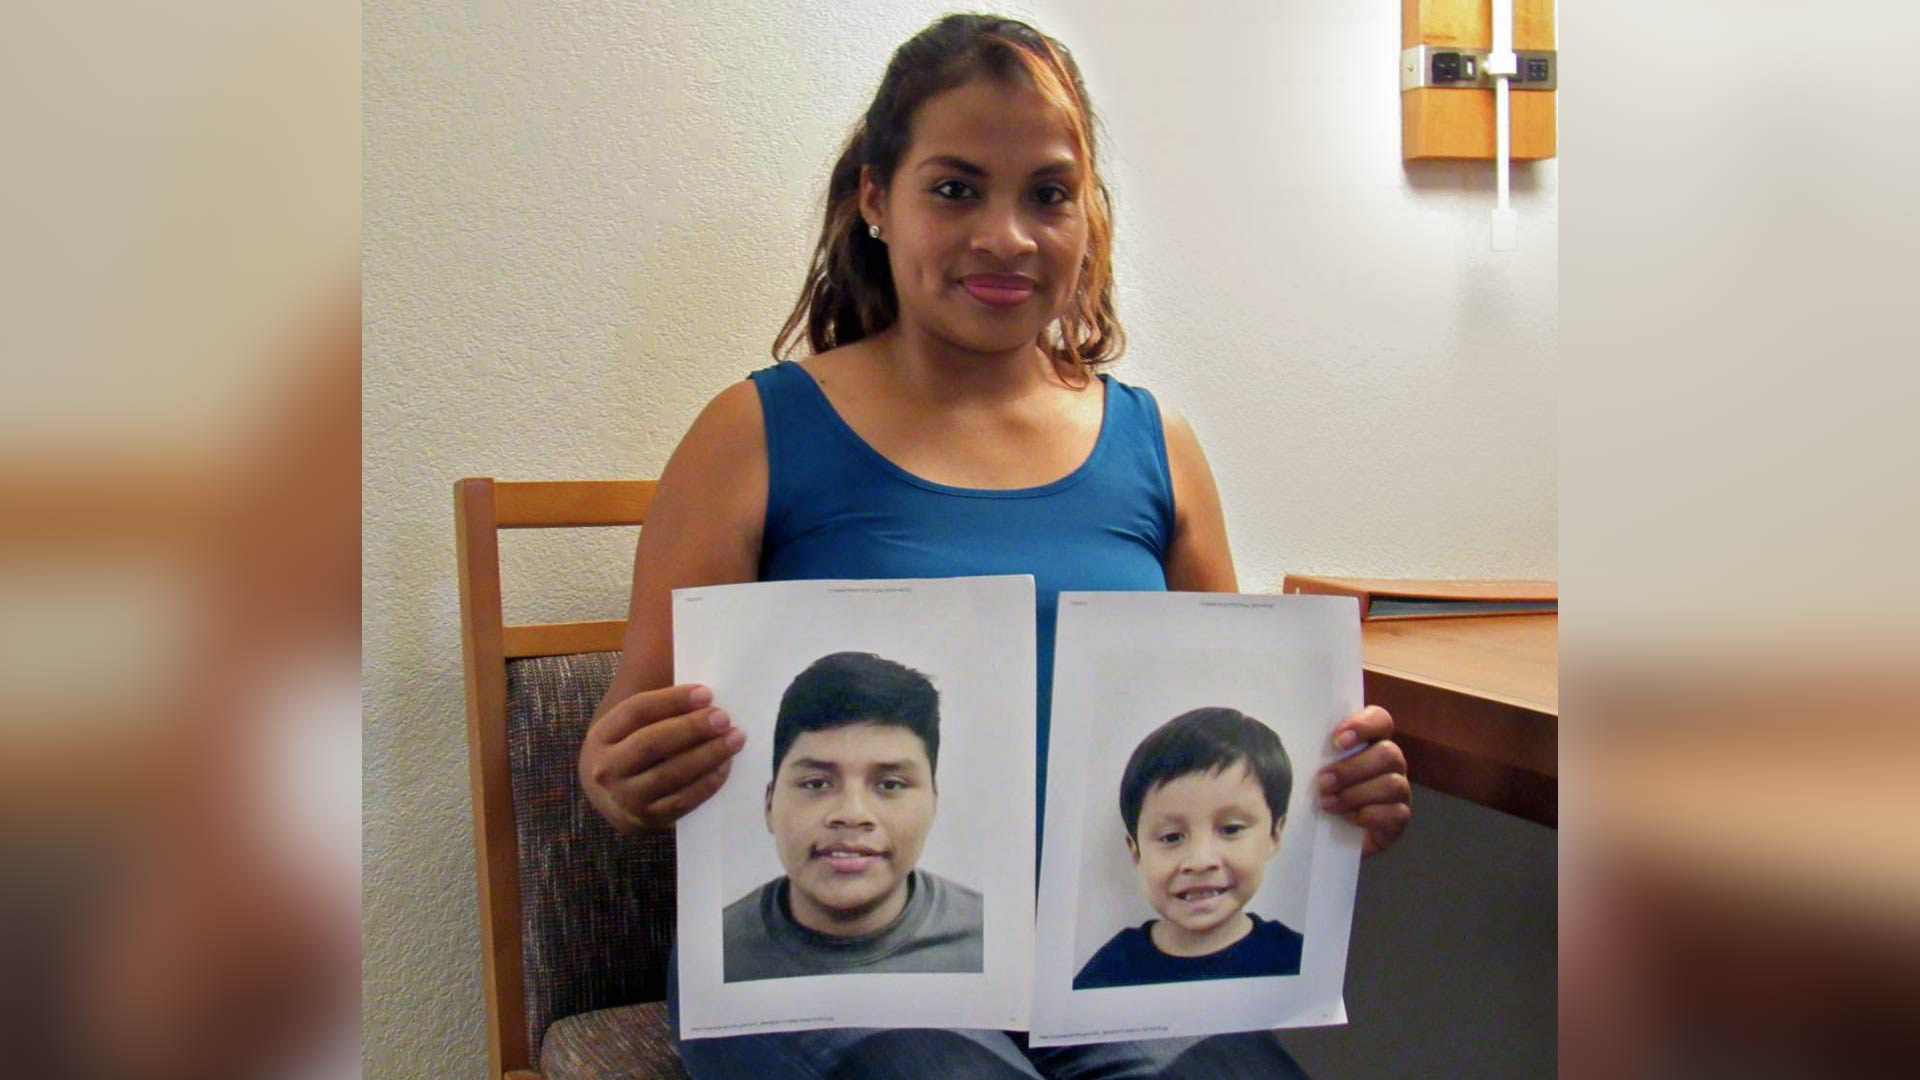 Rosaira Pablo Cruz holds photos of her two sons. Pablo Cruz was planning to catch a red-eye flight to New York Thursday night, with the hope of seeing the boys for the first time in about three months.